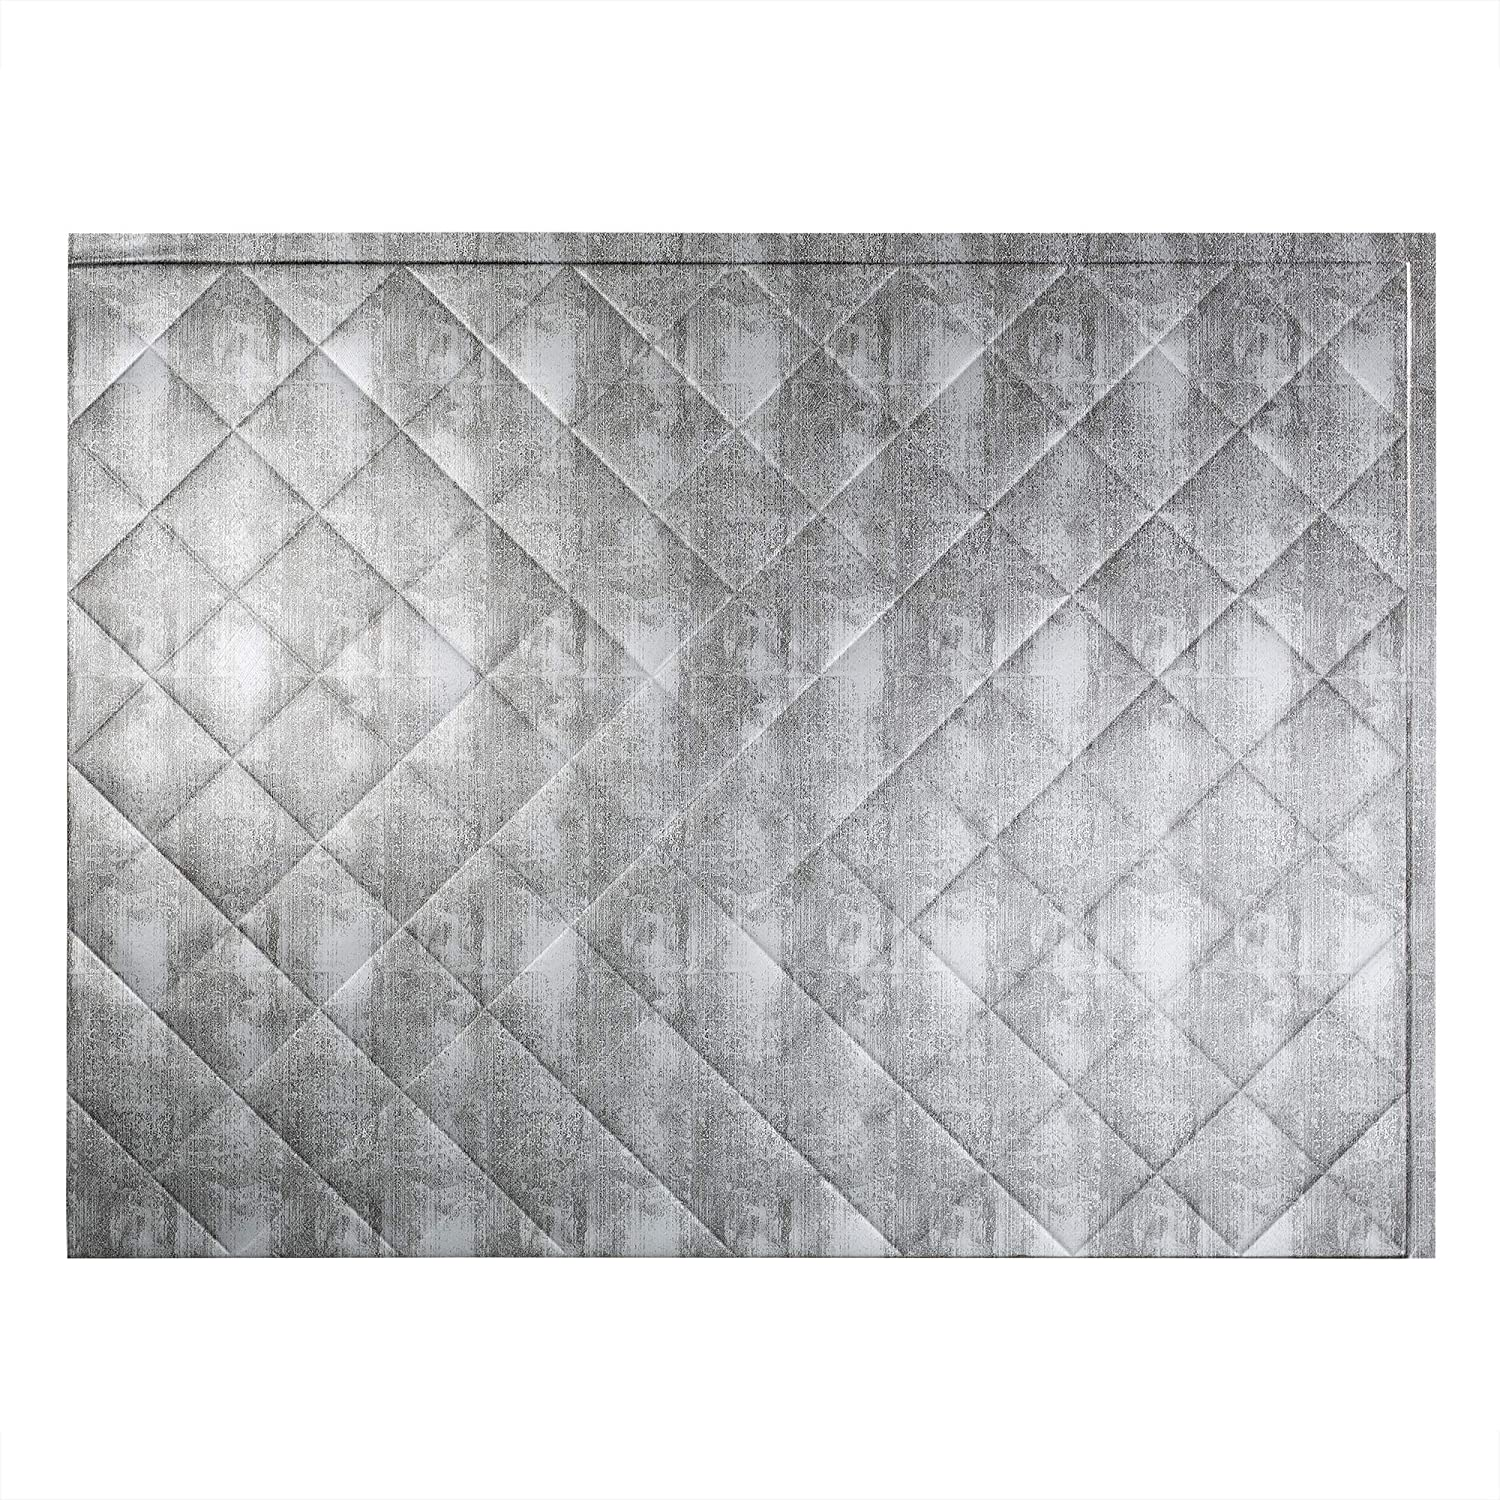 - Amazon.com: FASÄDE Quilted Decorative Vinyl Backsplash Panel In